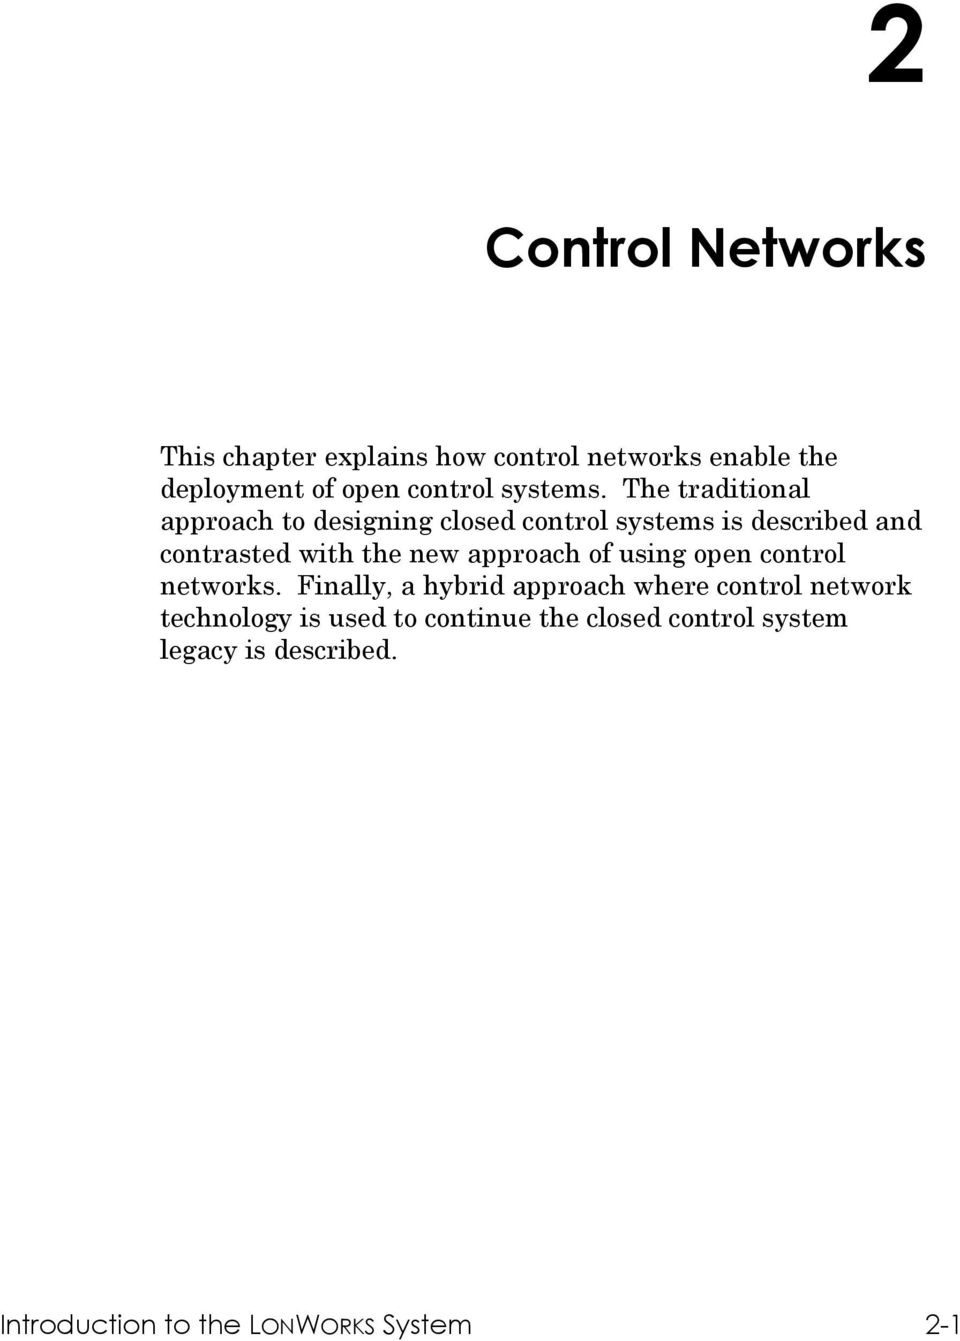 The traditional approach to designing closed control systems is described and contrasted with the new